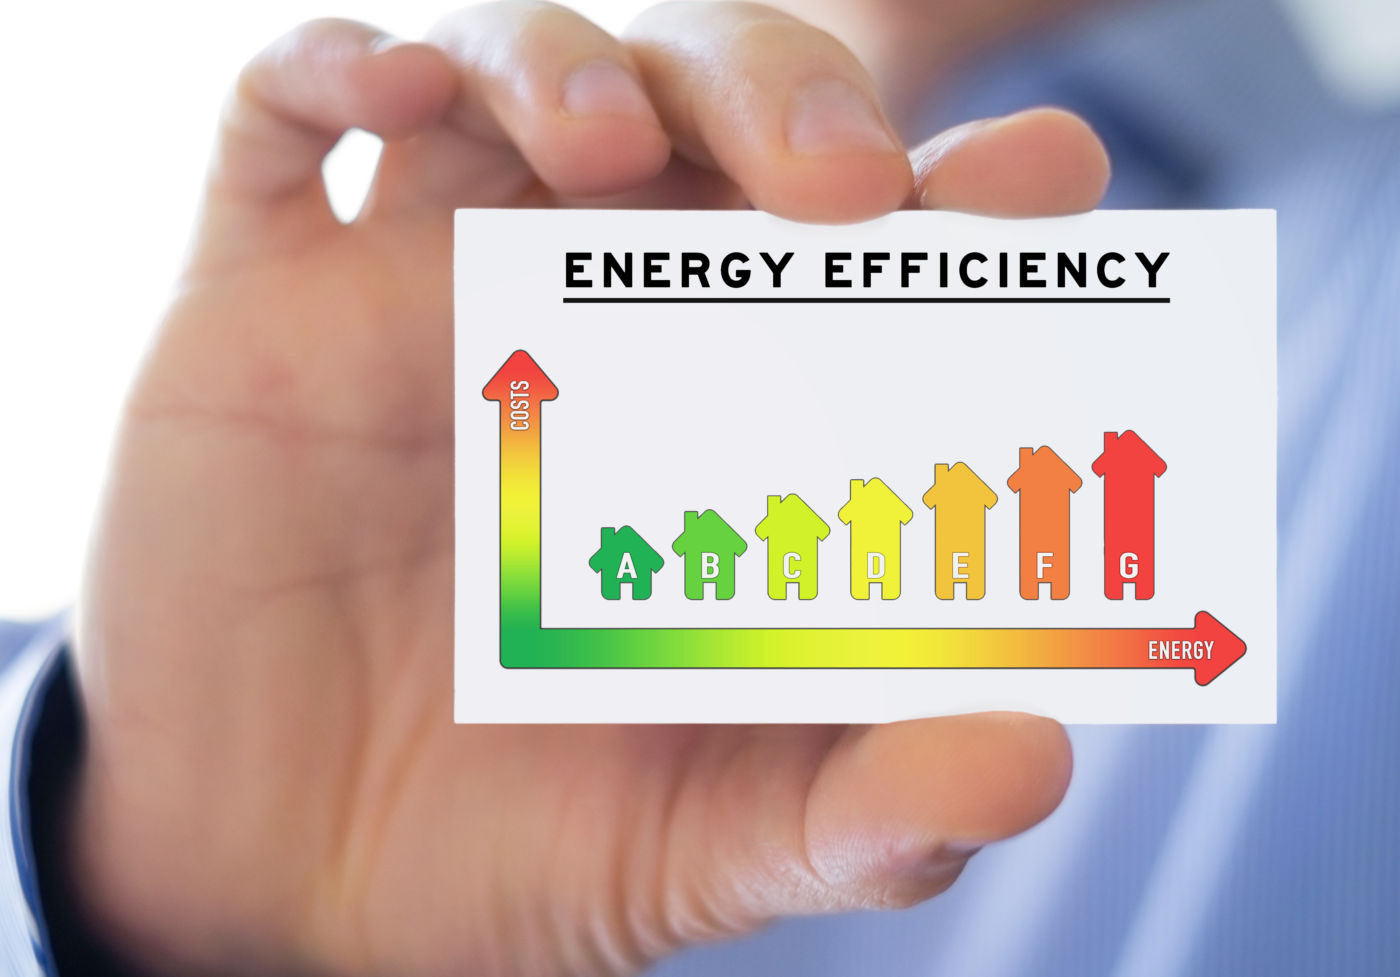 Hand holding card with energy efficiency chart.